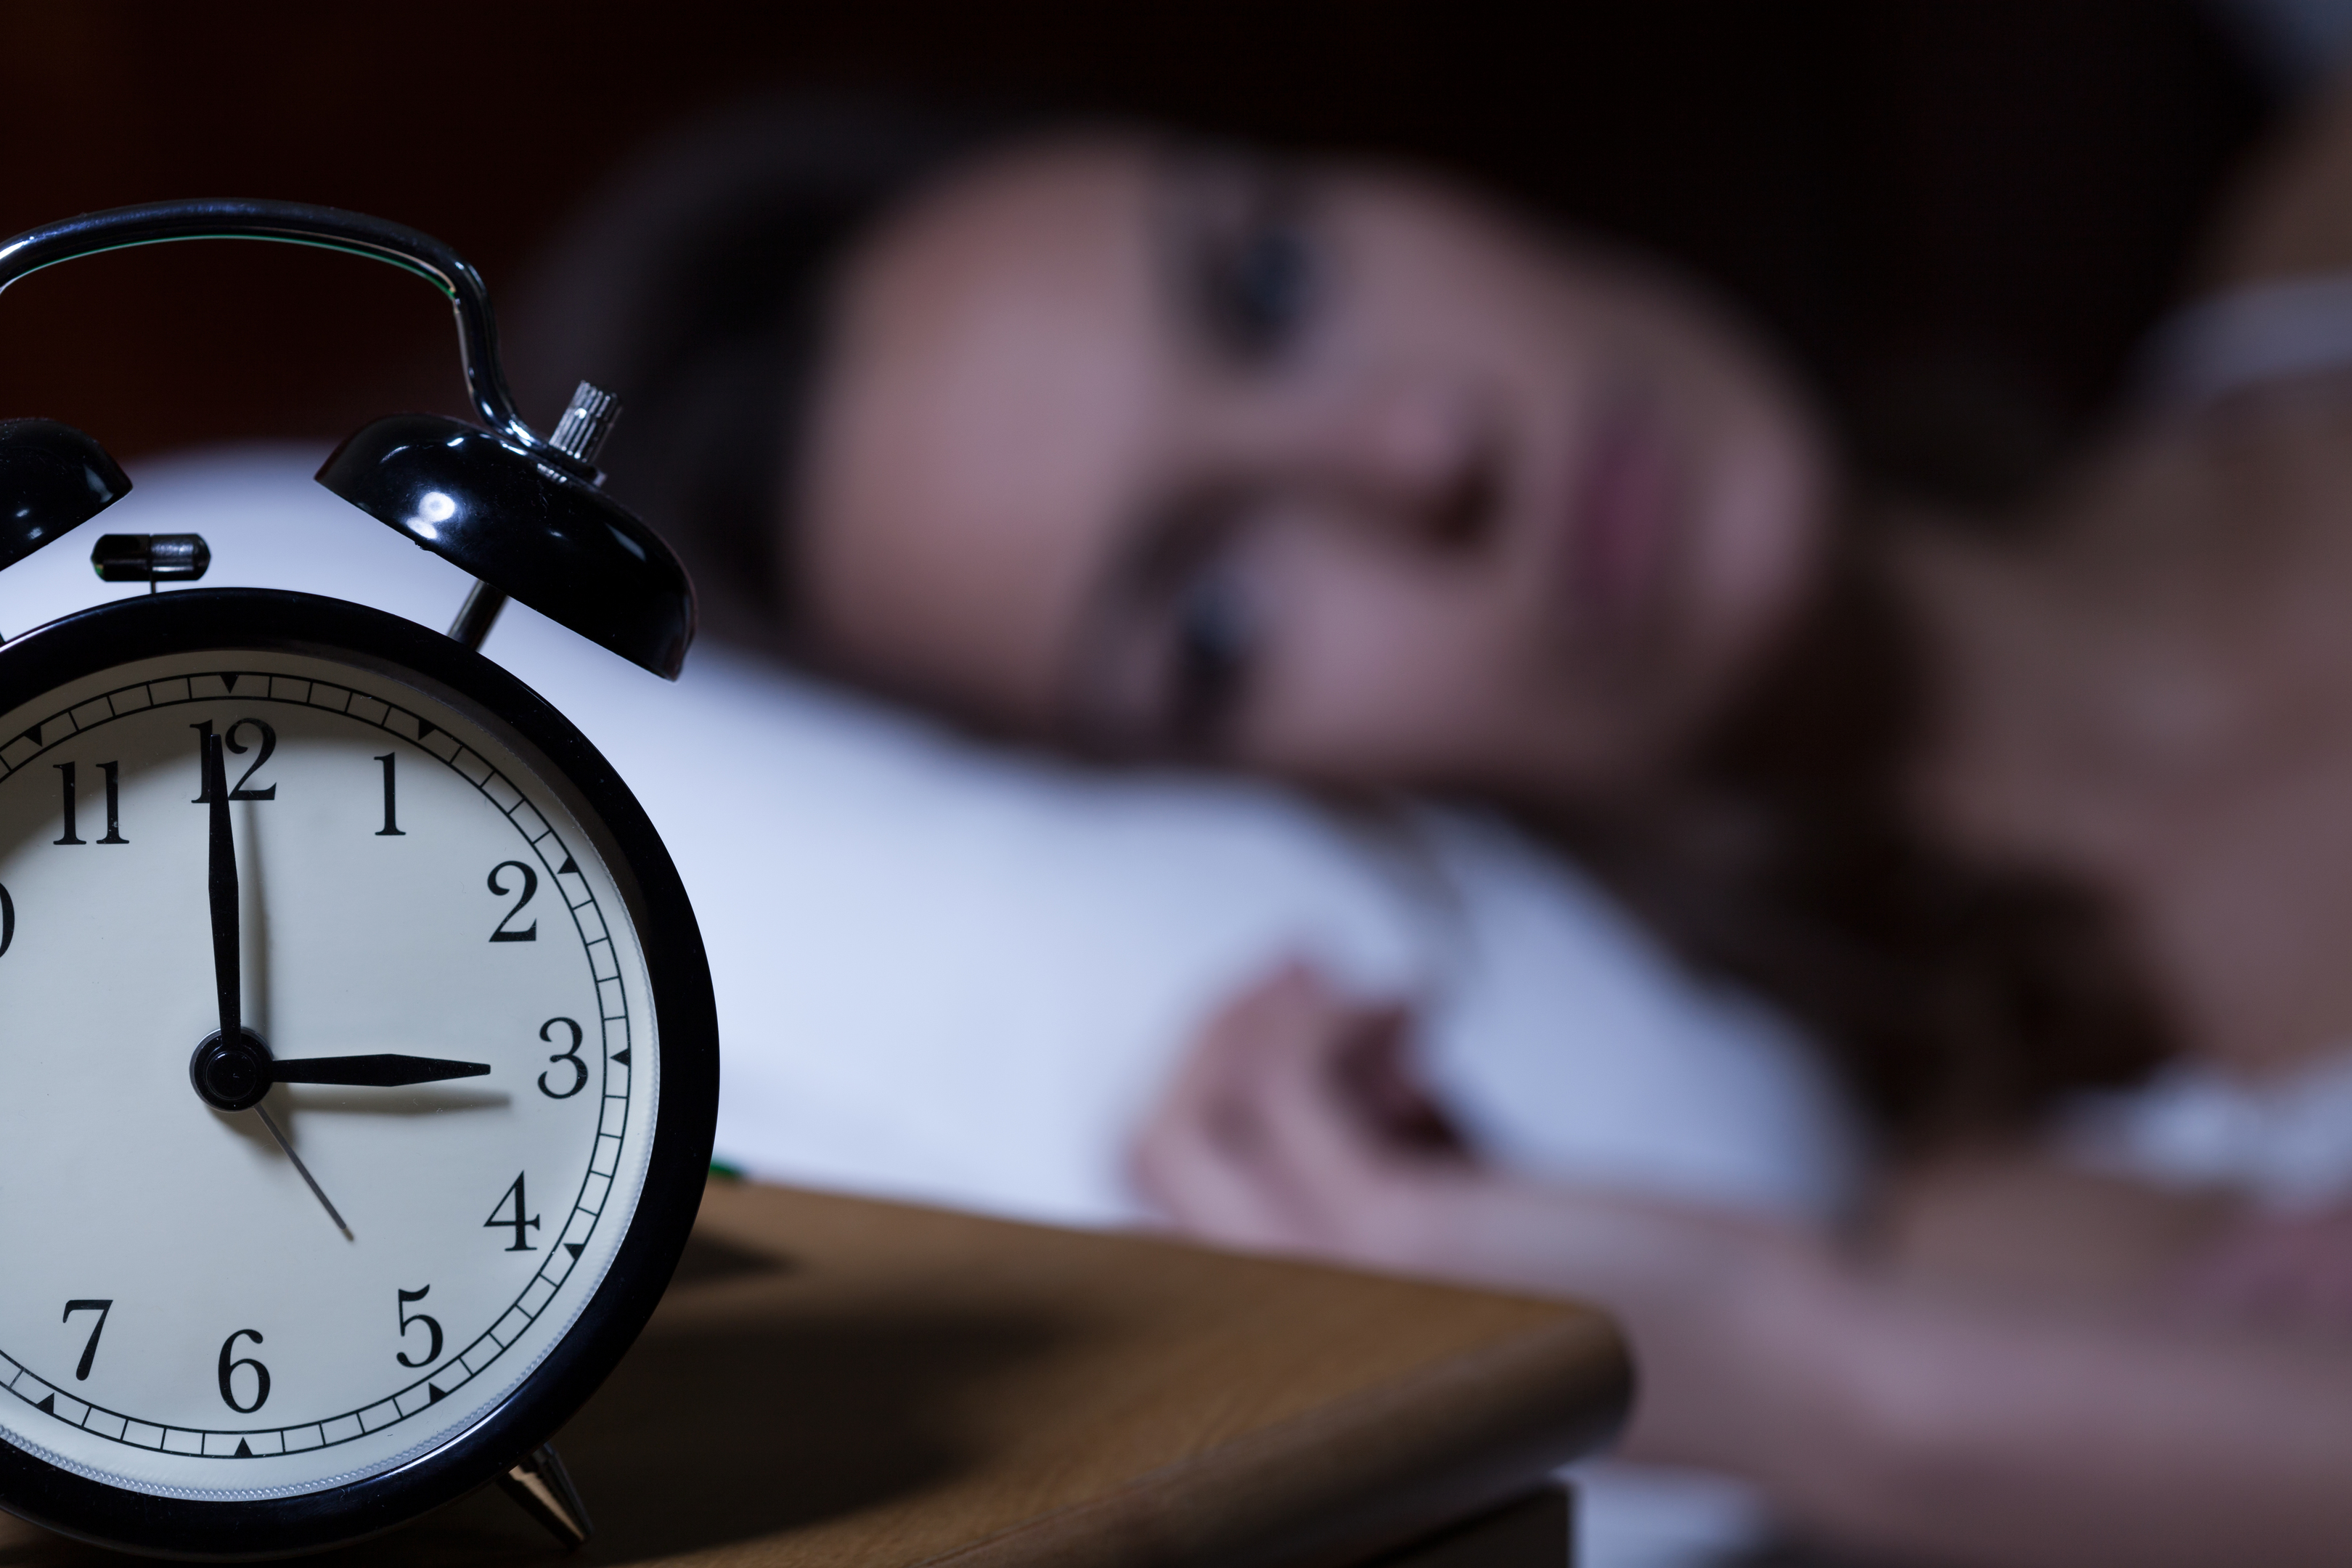 If you have trouble getting back to sleep, here are some top tips (Getty Images)